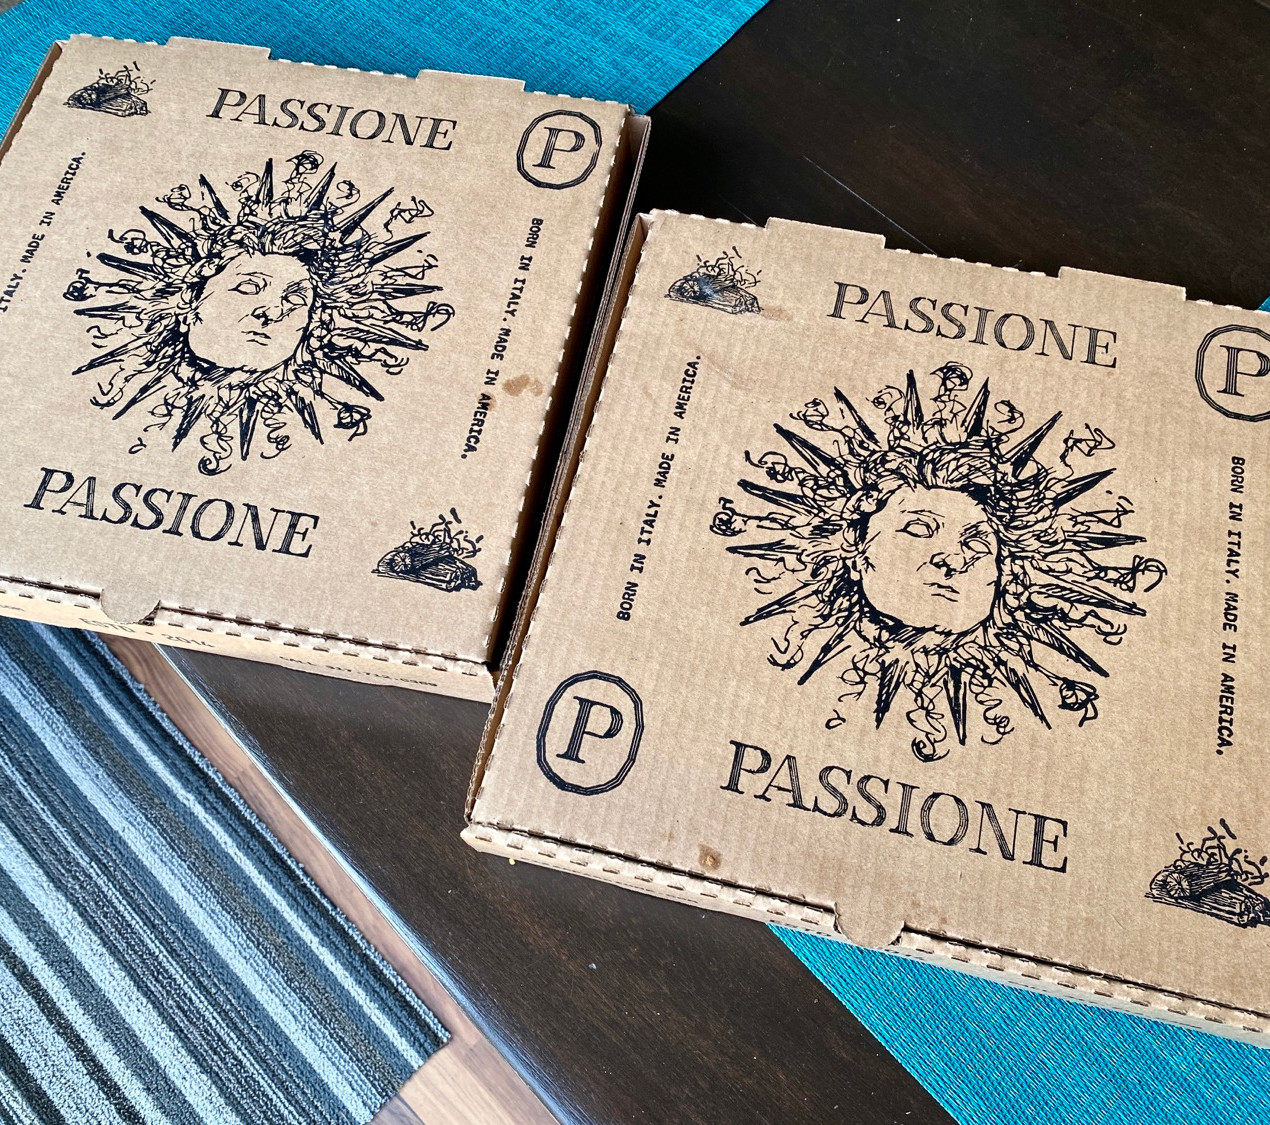 passione pizza boxes on kitchen table